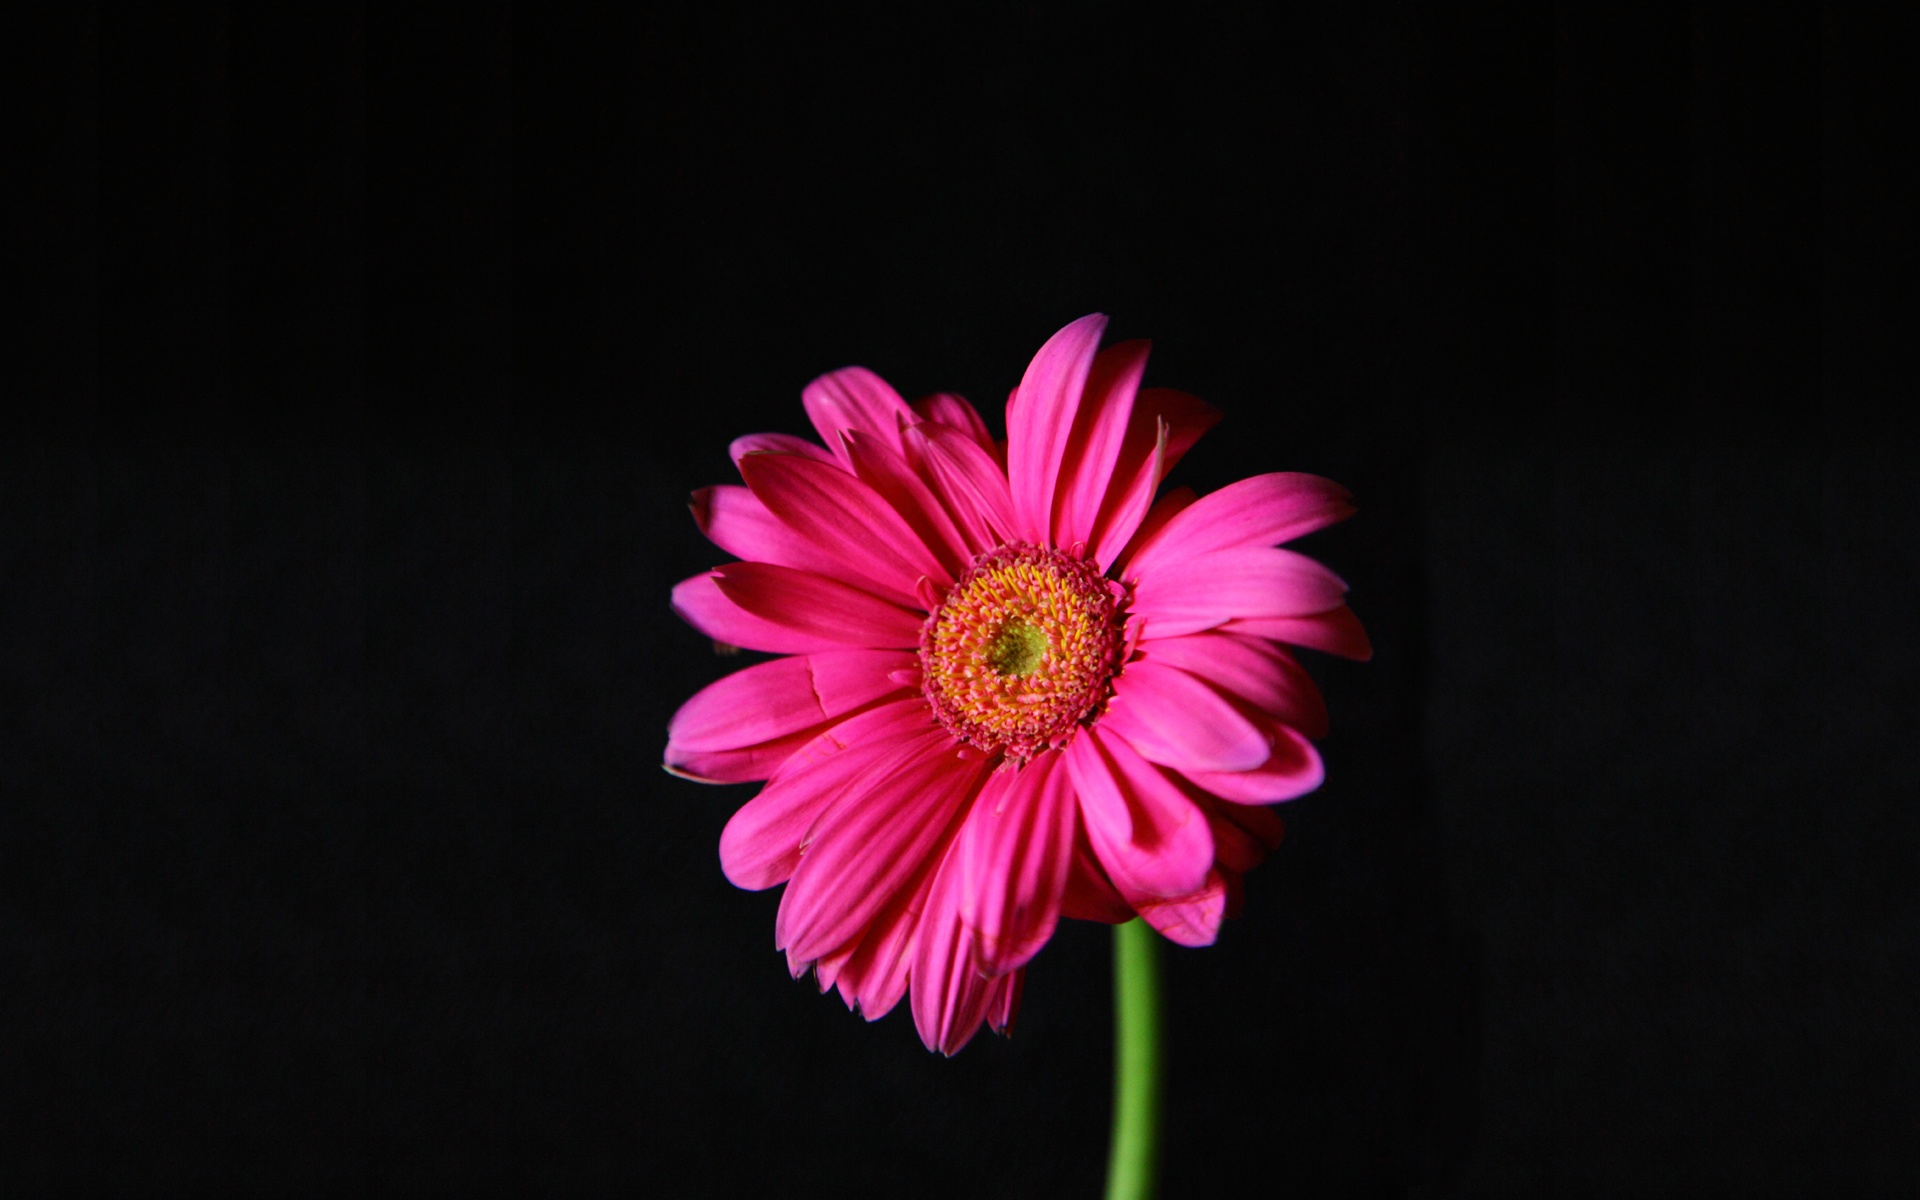 Bright pink flowers 27826 1920x1200 px hdwallsource bright pink flowers 27826 mightylinksfo Choice Image